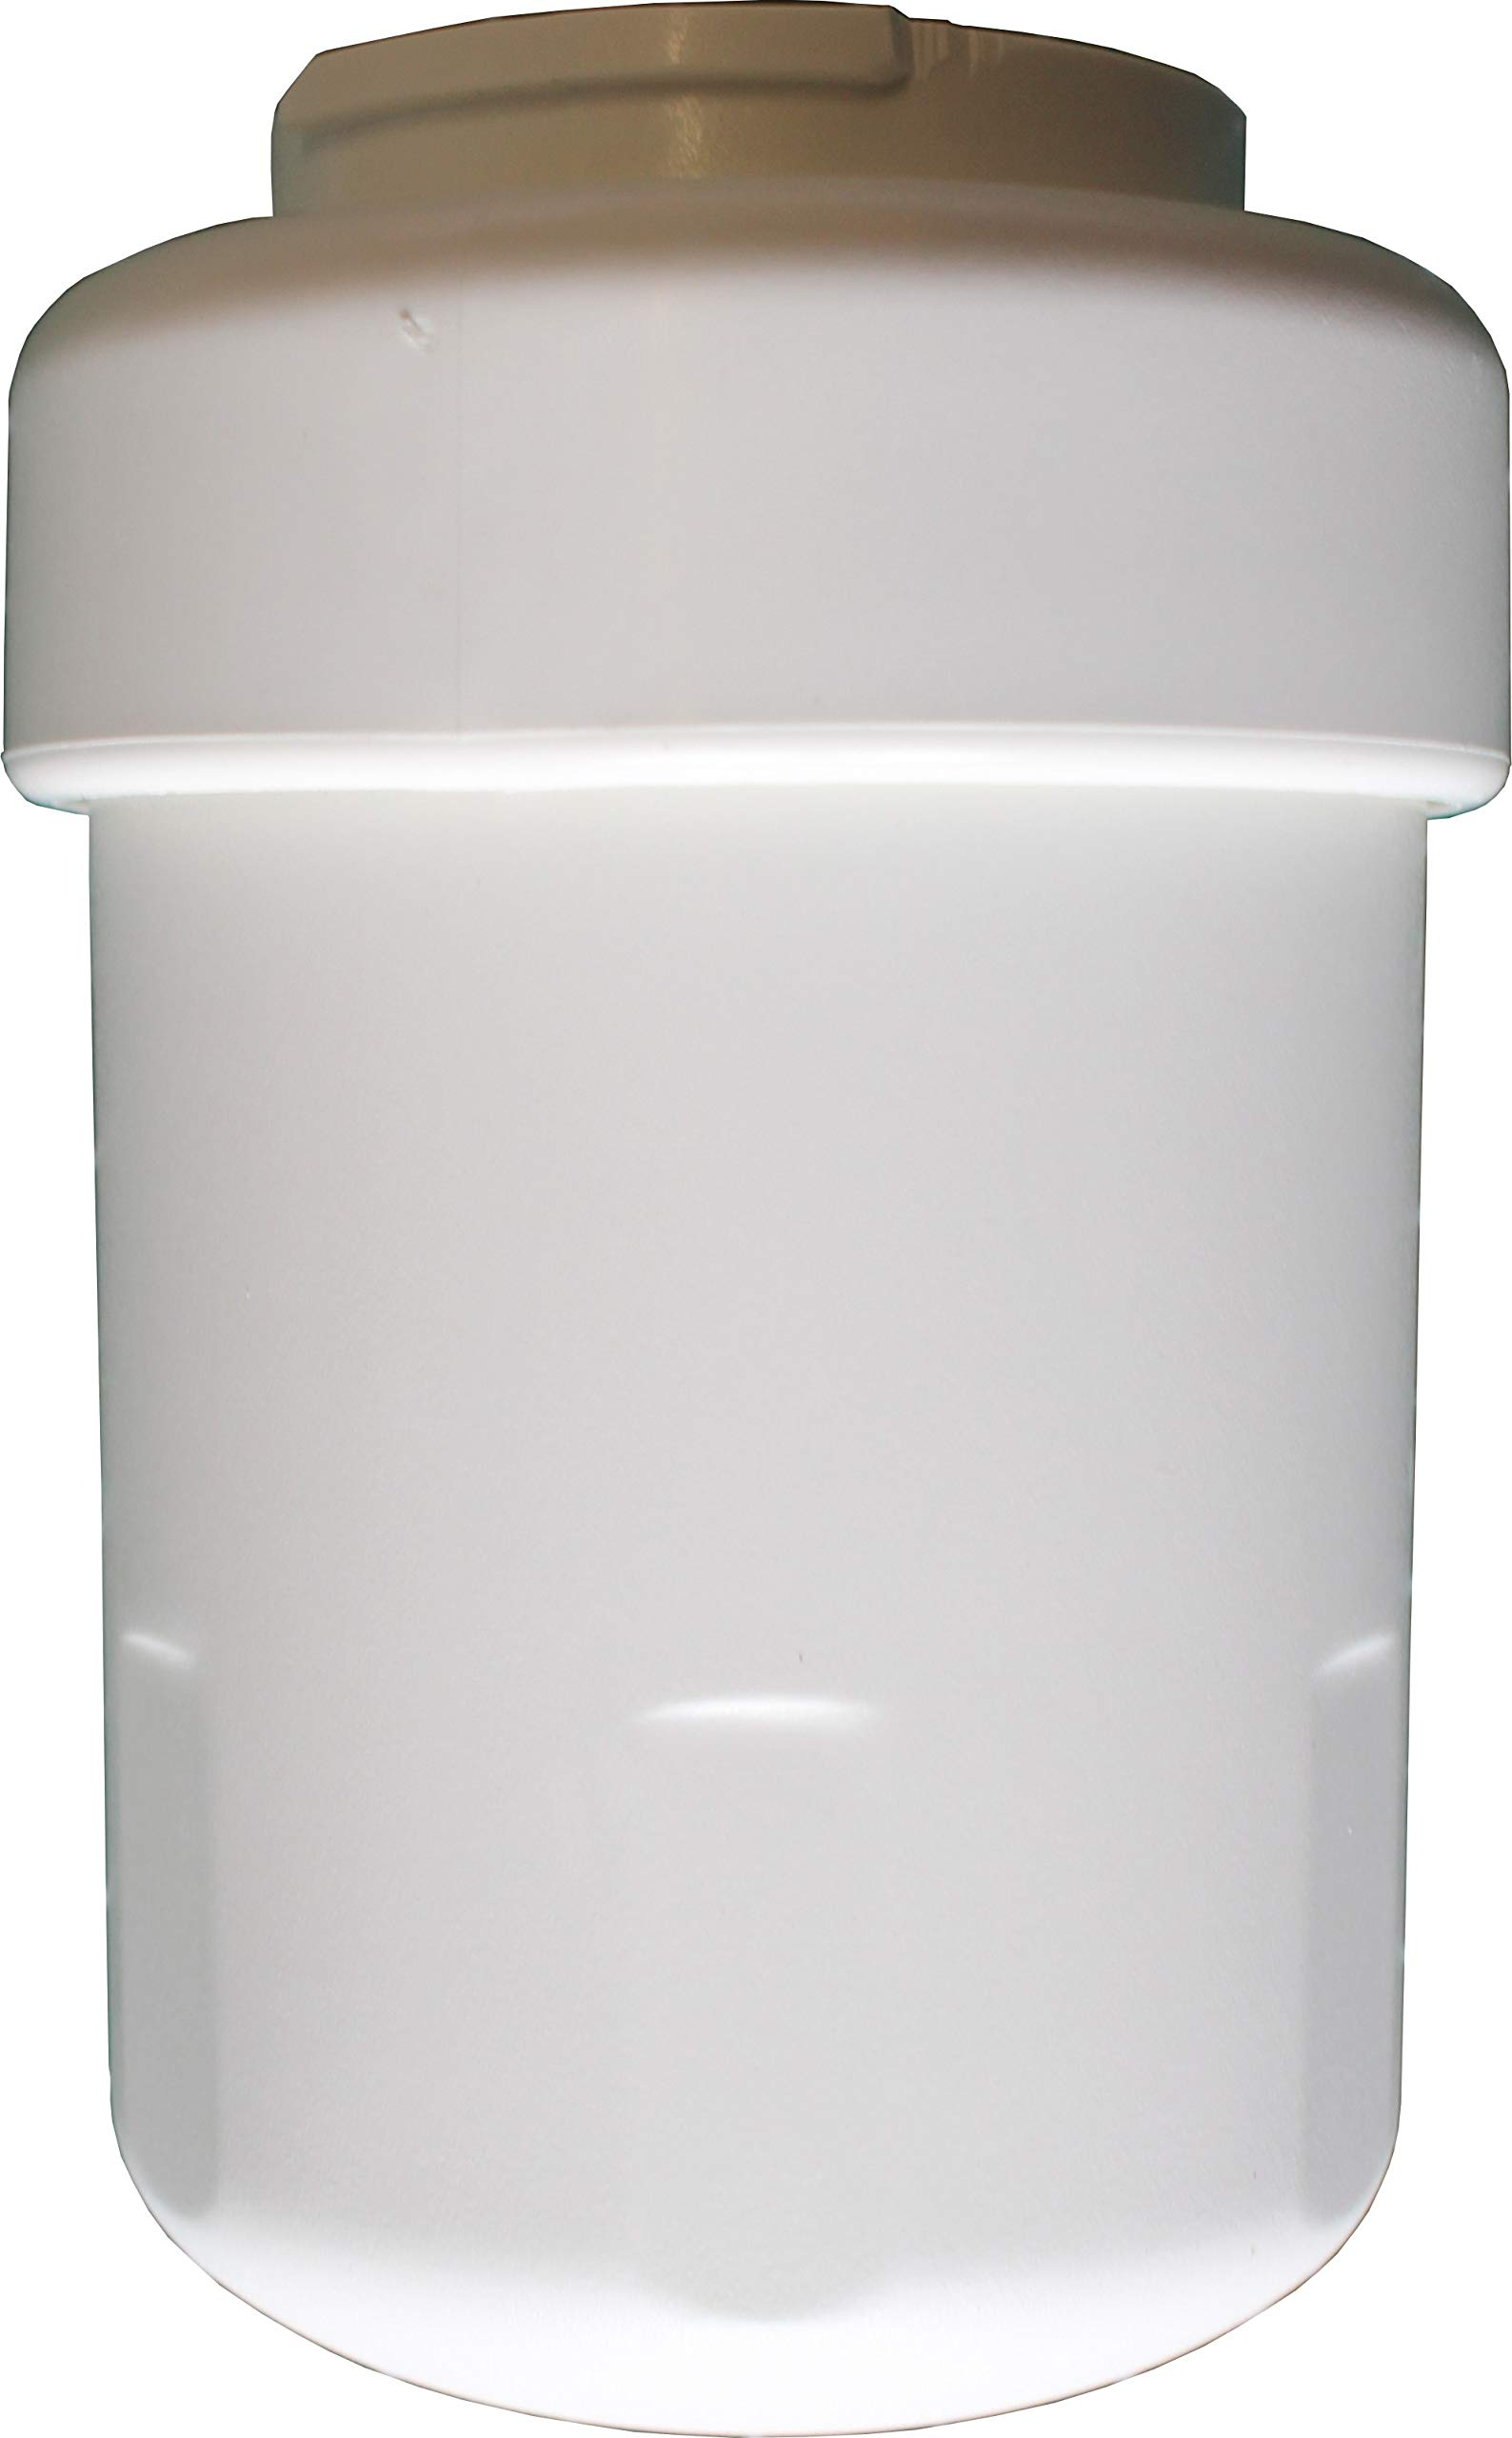 Replacement Refrigerator Water Filter Compatible with GE MWF